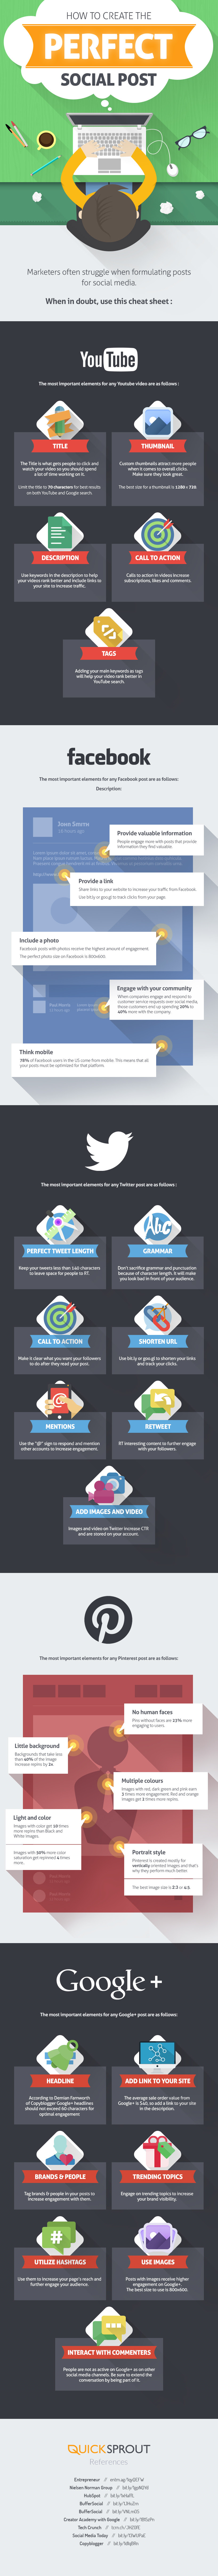 #SocialMedia Optimization: Creating the Perfect Post On YouTube, Pinterest & Google+ - #infographic